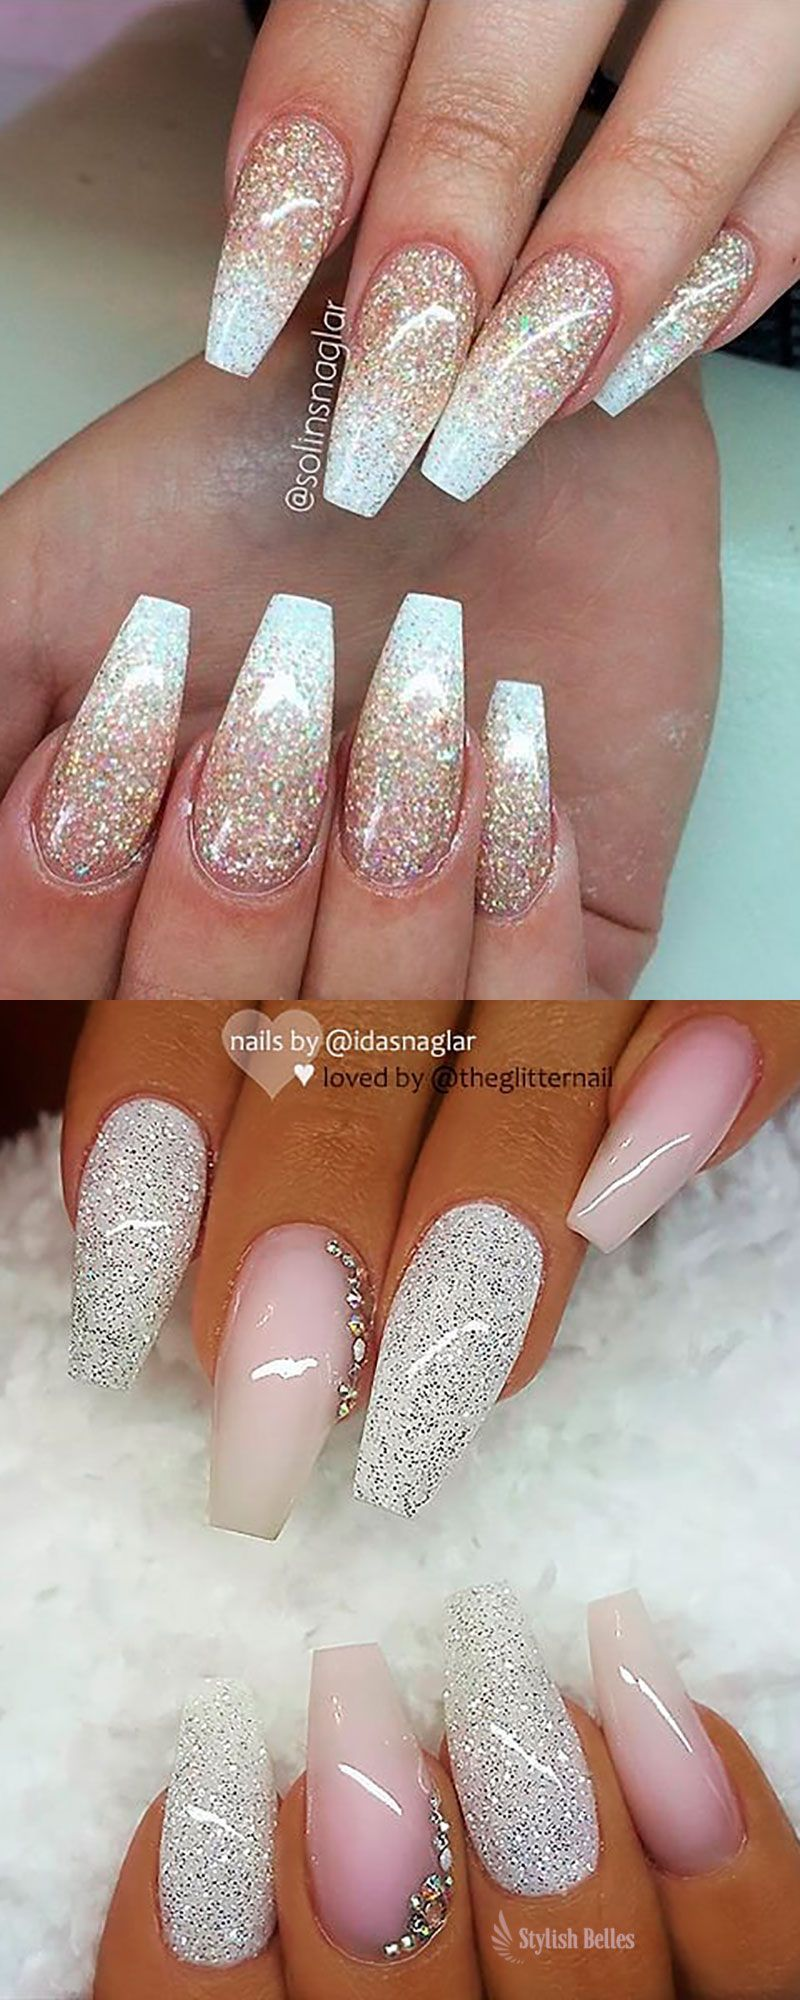 Gorgeous Ombre Glitter Coffin Nails Ideas Gelove Nehty Nehty Ombre